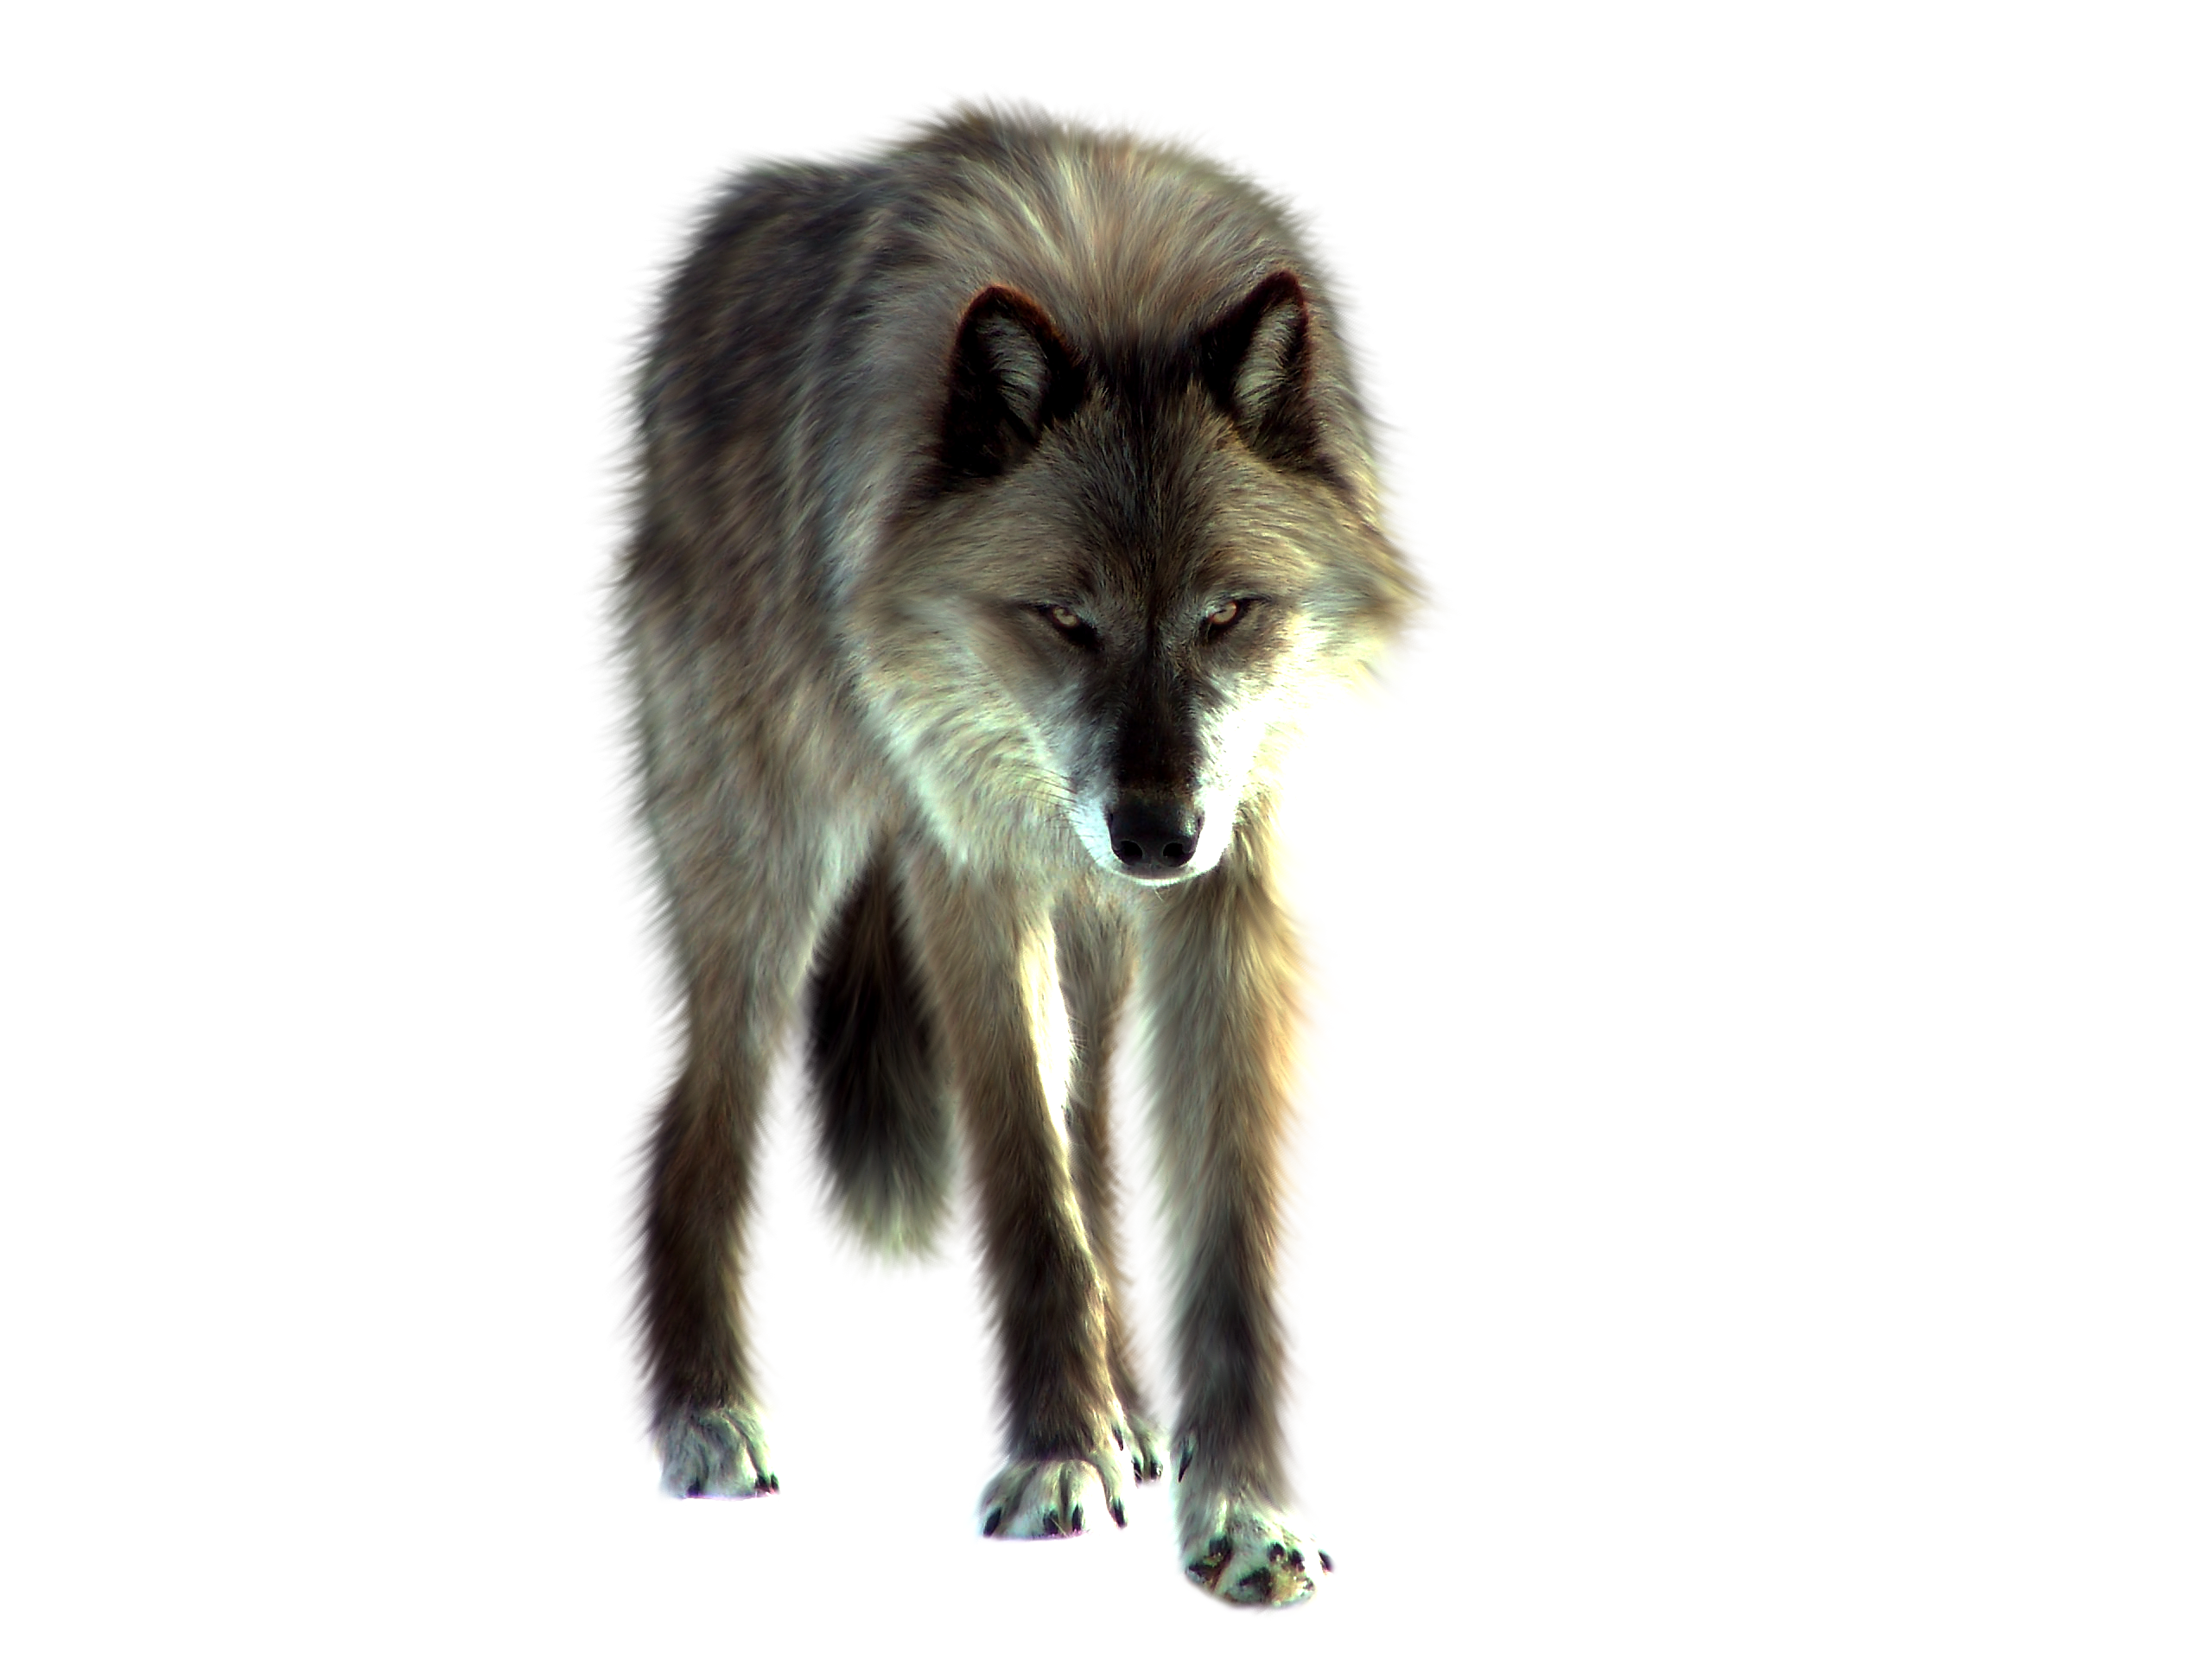 Wolf Png Image PNG Image